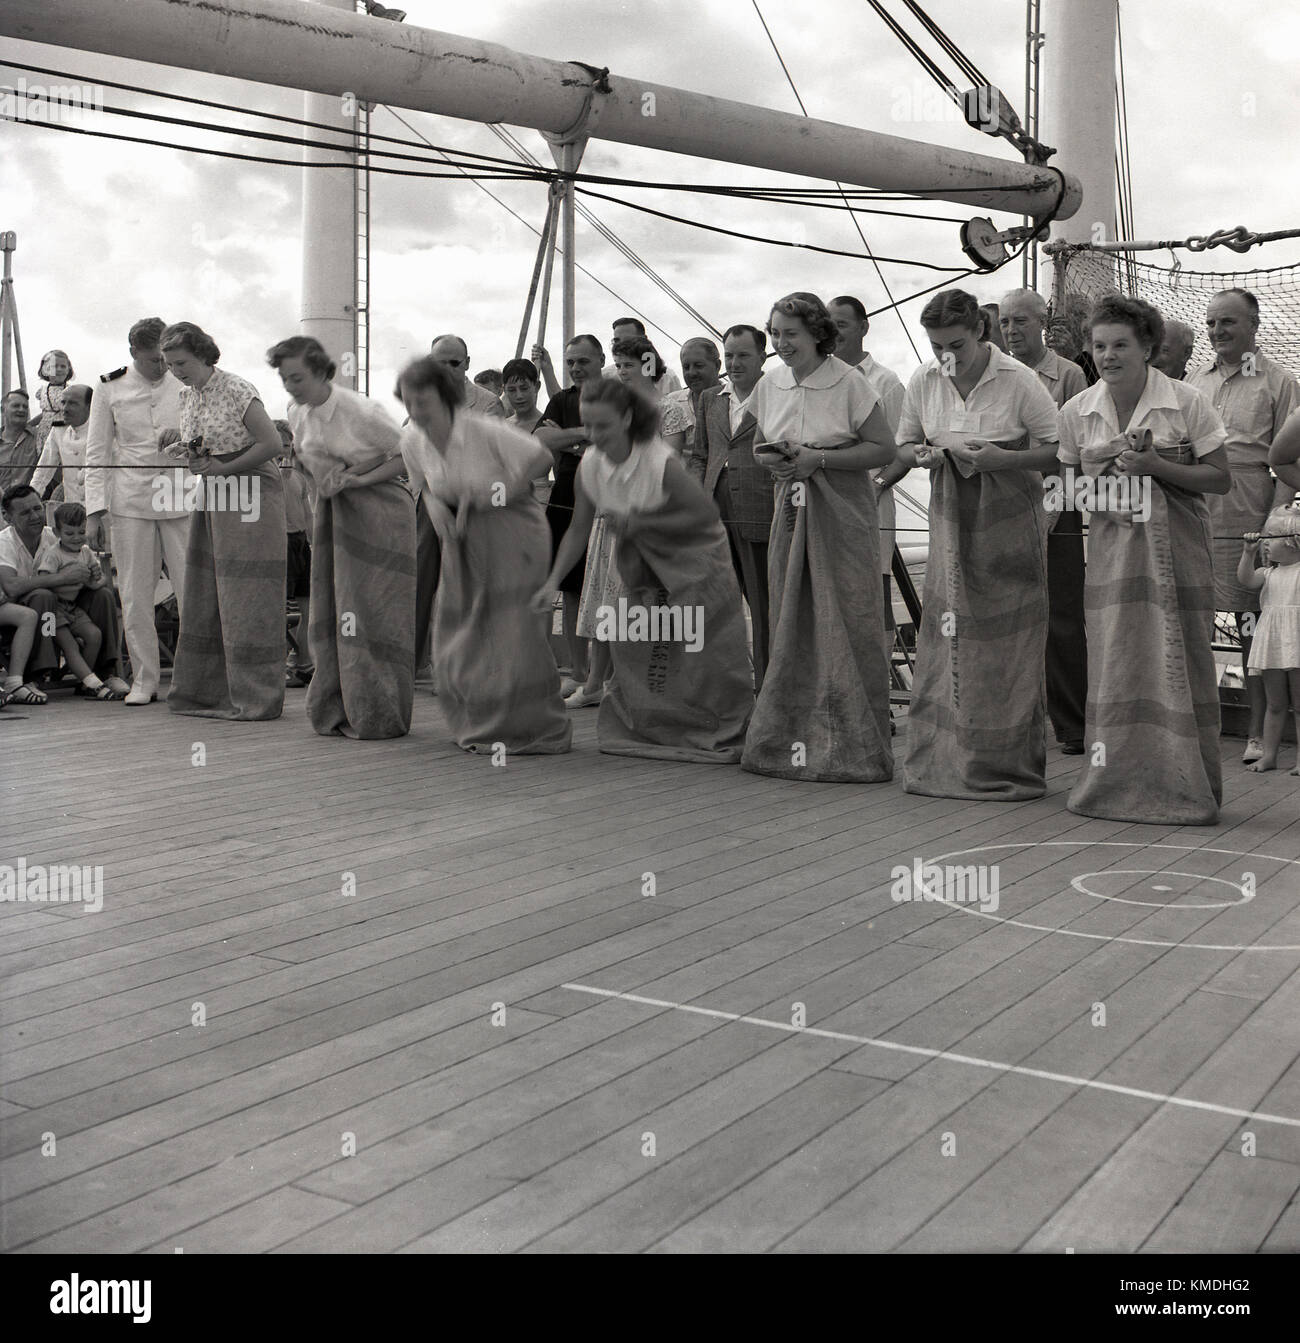 1950s, historical, ship deck games, female passengers standing in mailbags line up for a race on the deck of a Union - Stock Image